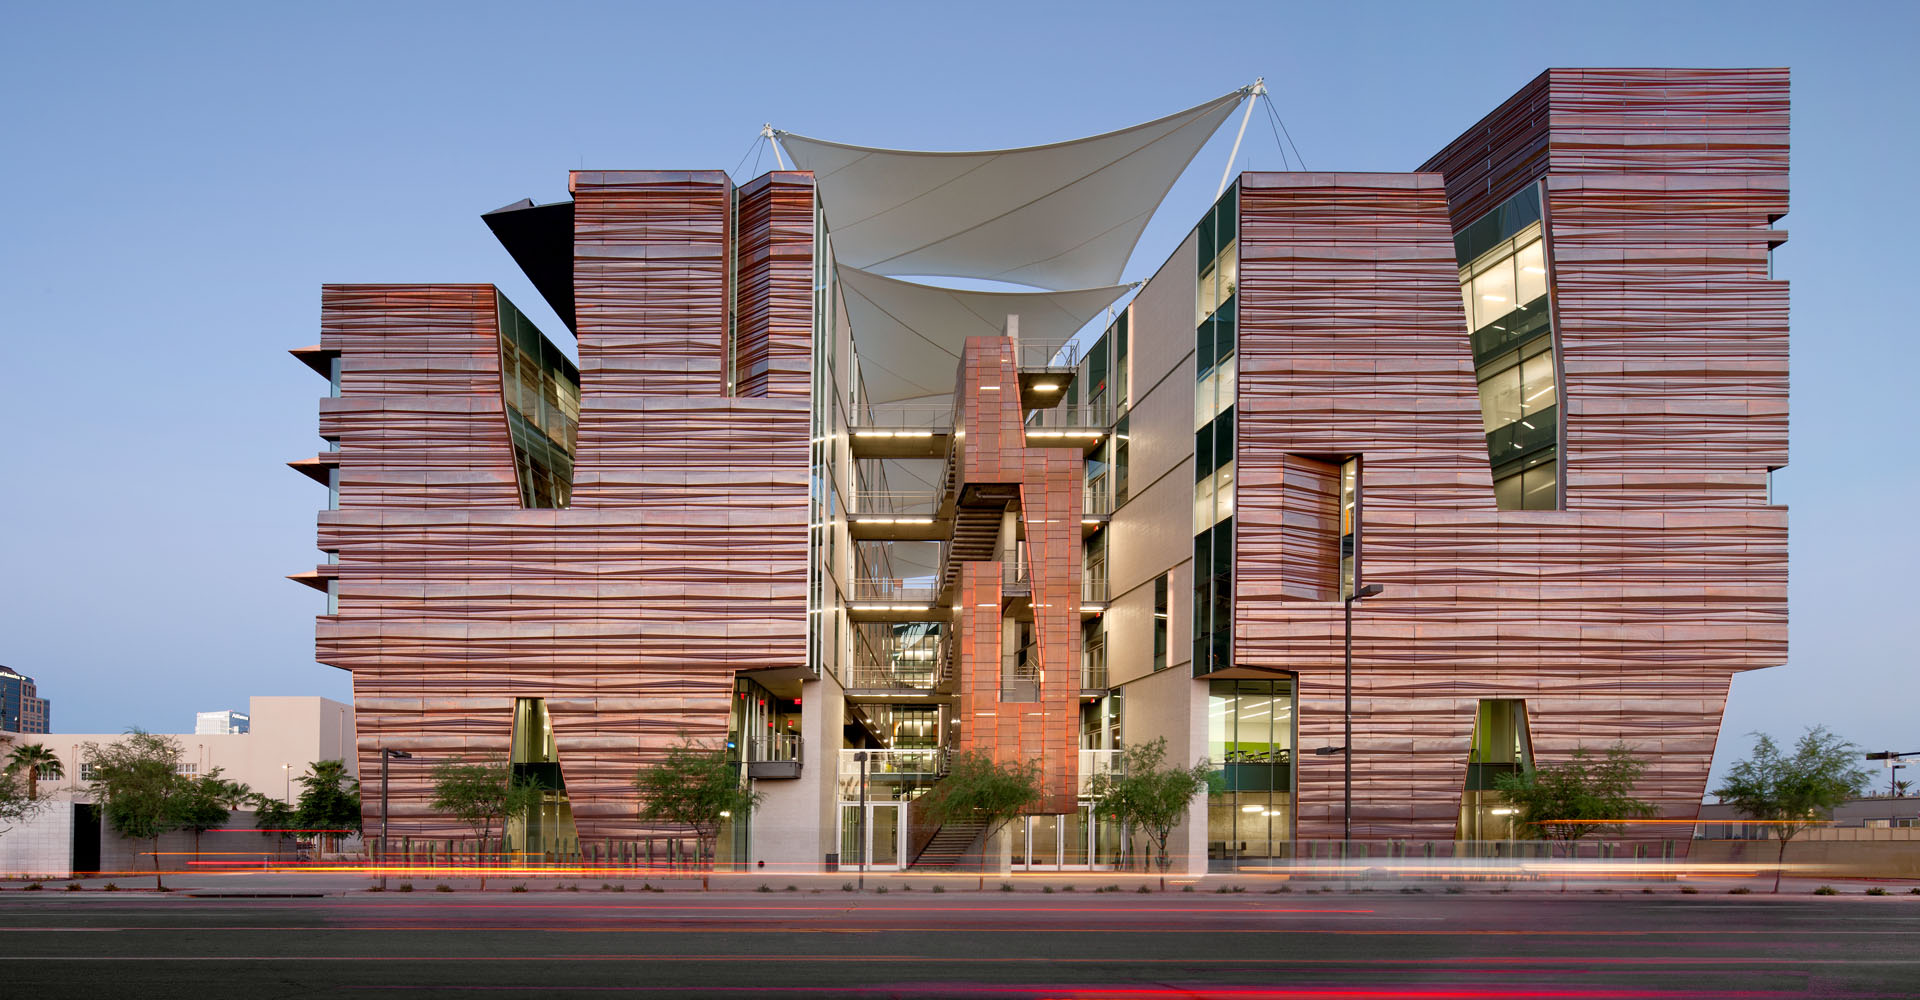 Pheonix, AZ - Health and Science Education Building - CO Architects